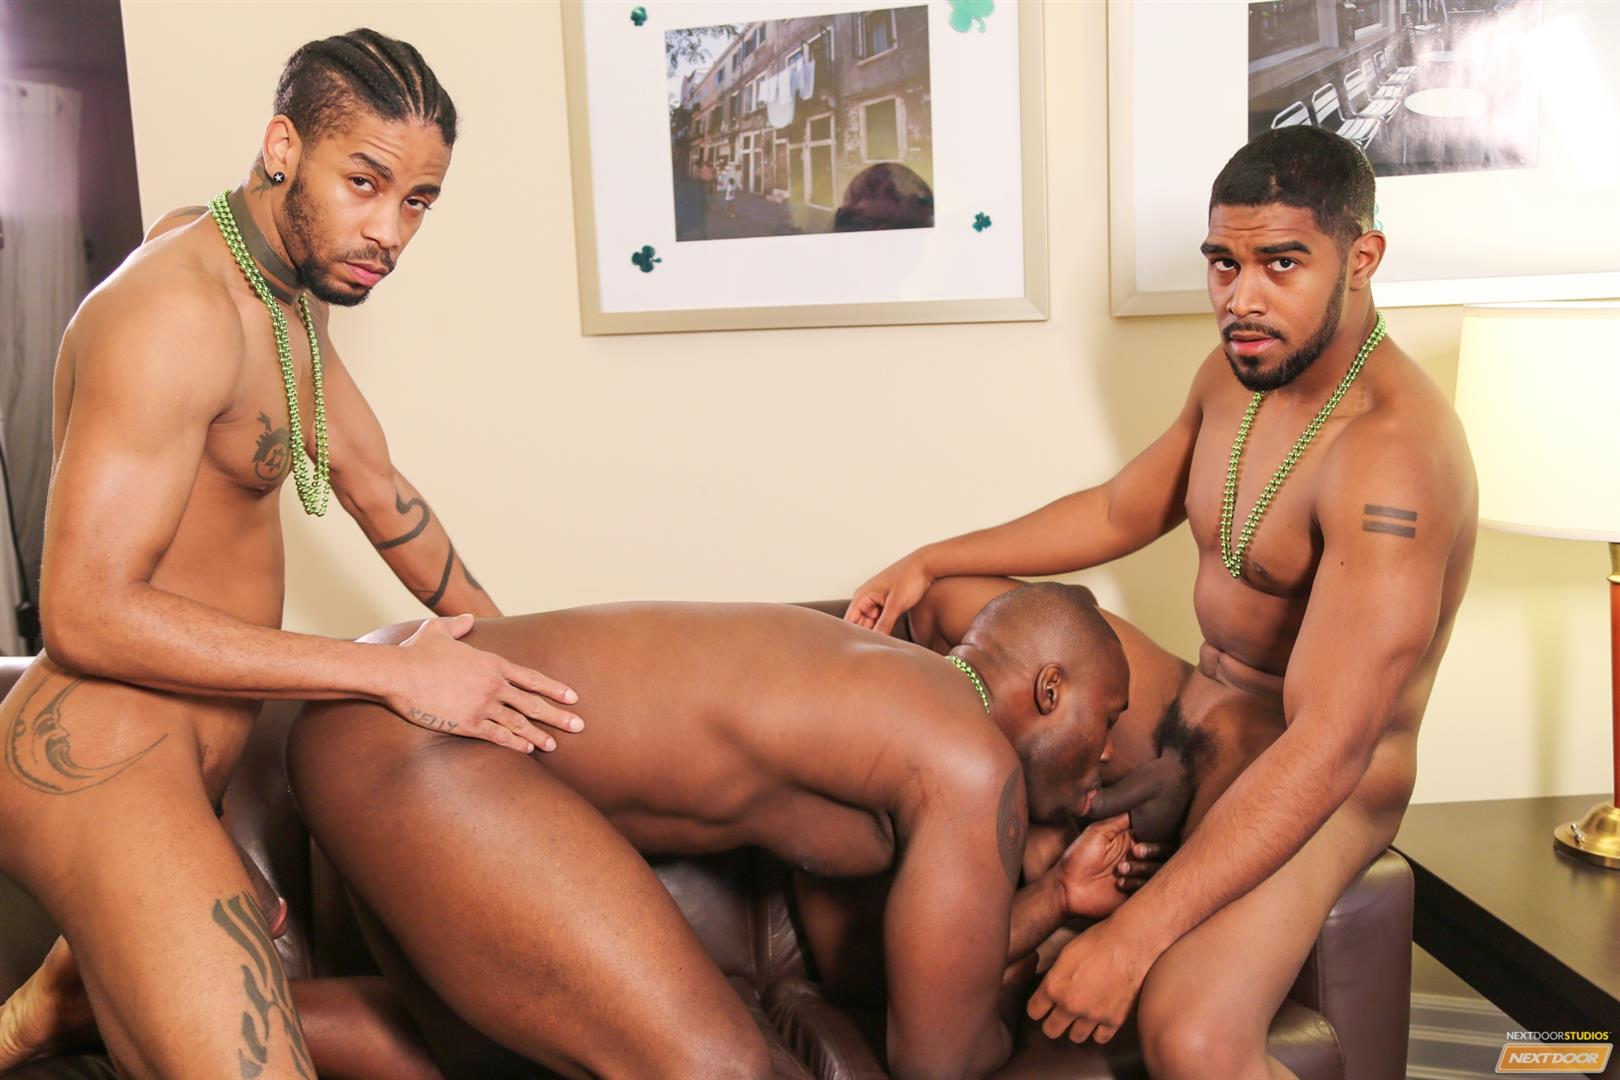 Next-Door-Ebony-Nubius-and-Jin-Powers-and-XL-Naked-Thugs-Threeway-Fucking-Amateur-Gay-Porn-11 Big Black Cock Threeway Suck and Fuck Thug Fest